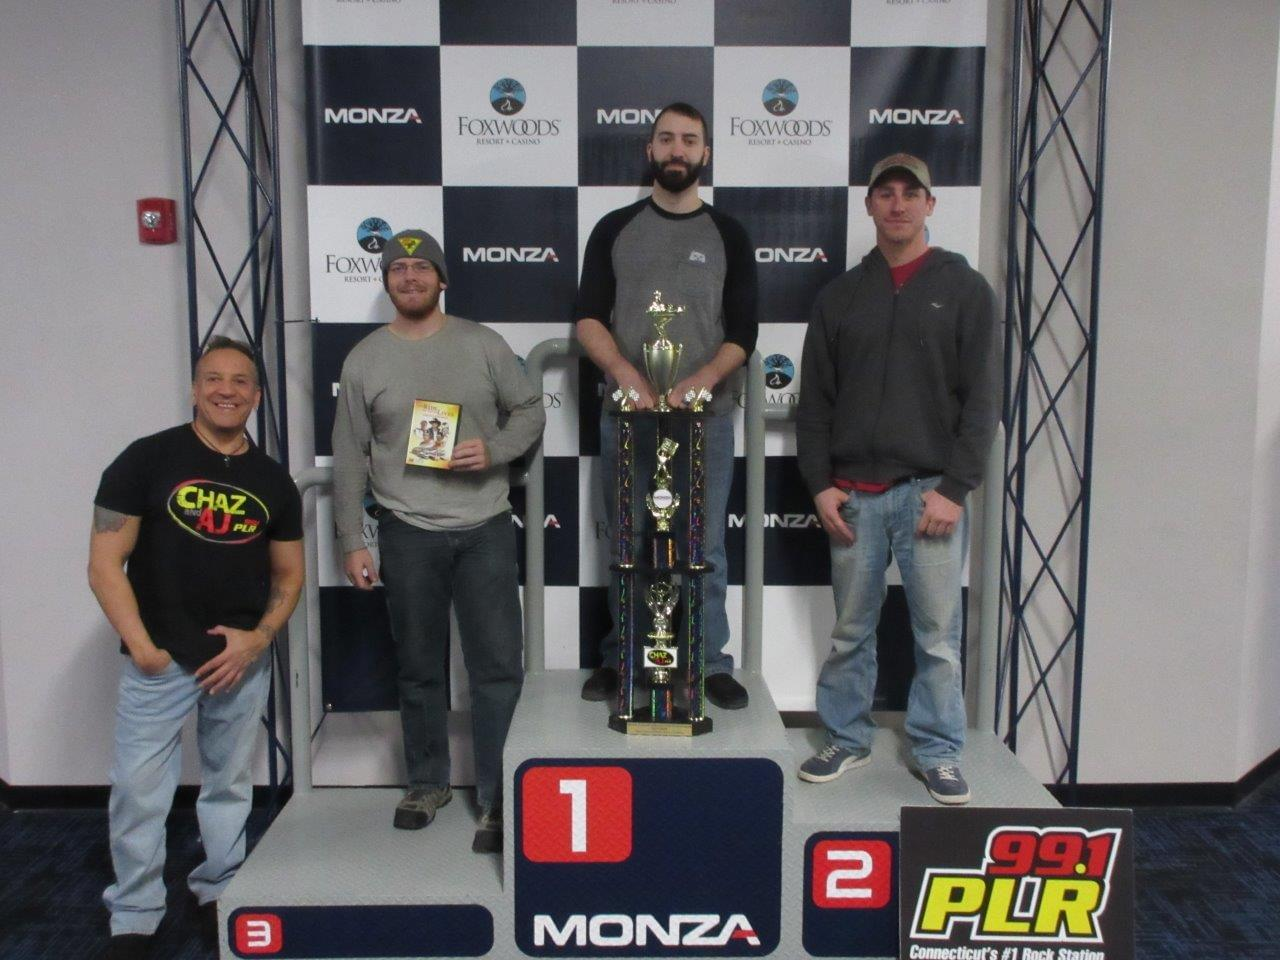 Chaz & AJ Go Kart 500 at Monza World Class Karting at Foxwoods